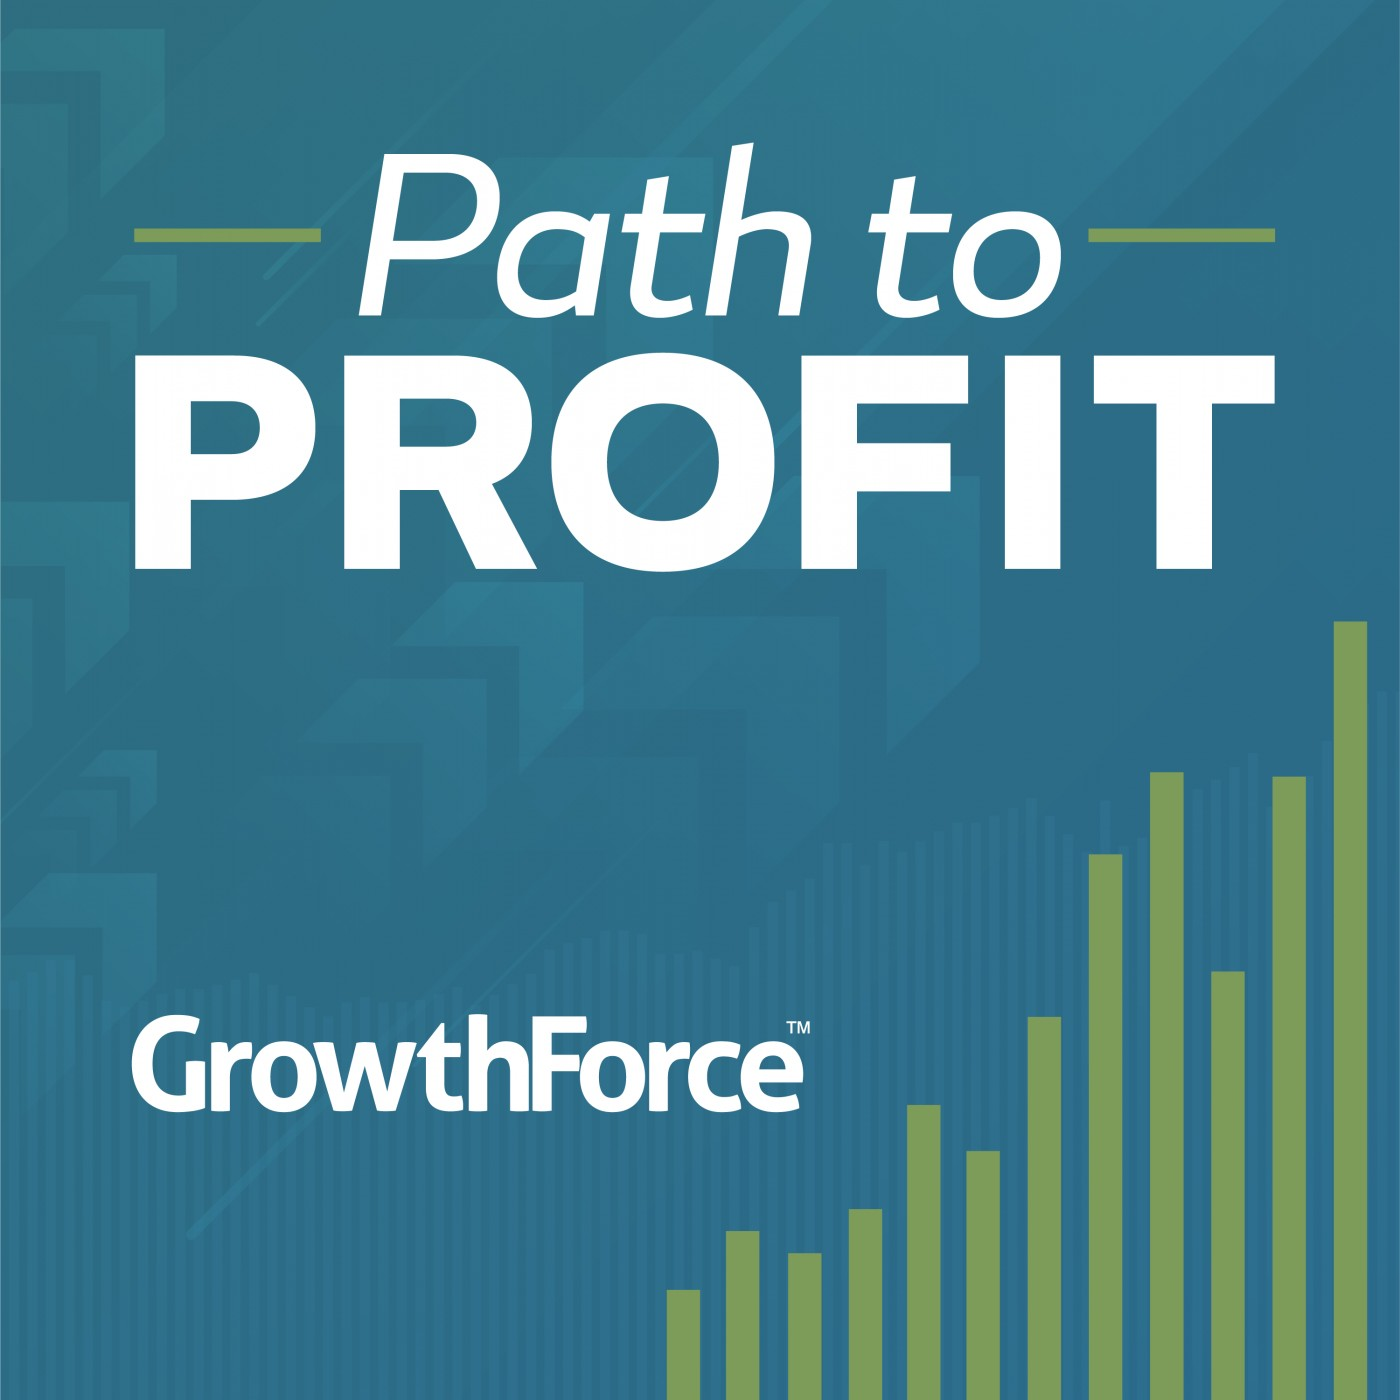 Tracking Key Performance Indicators to Drive Business Growth